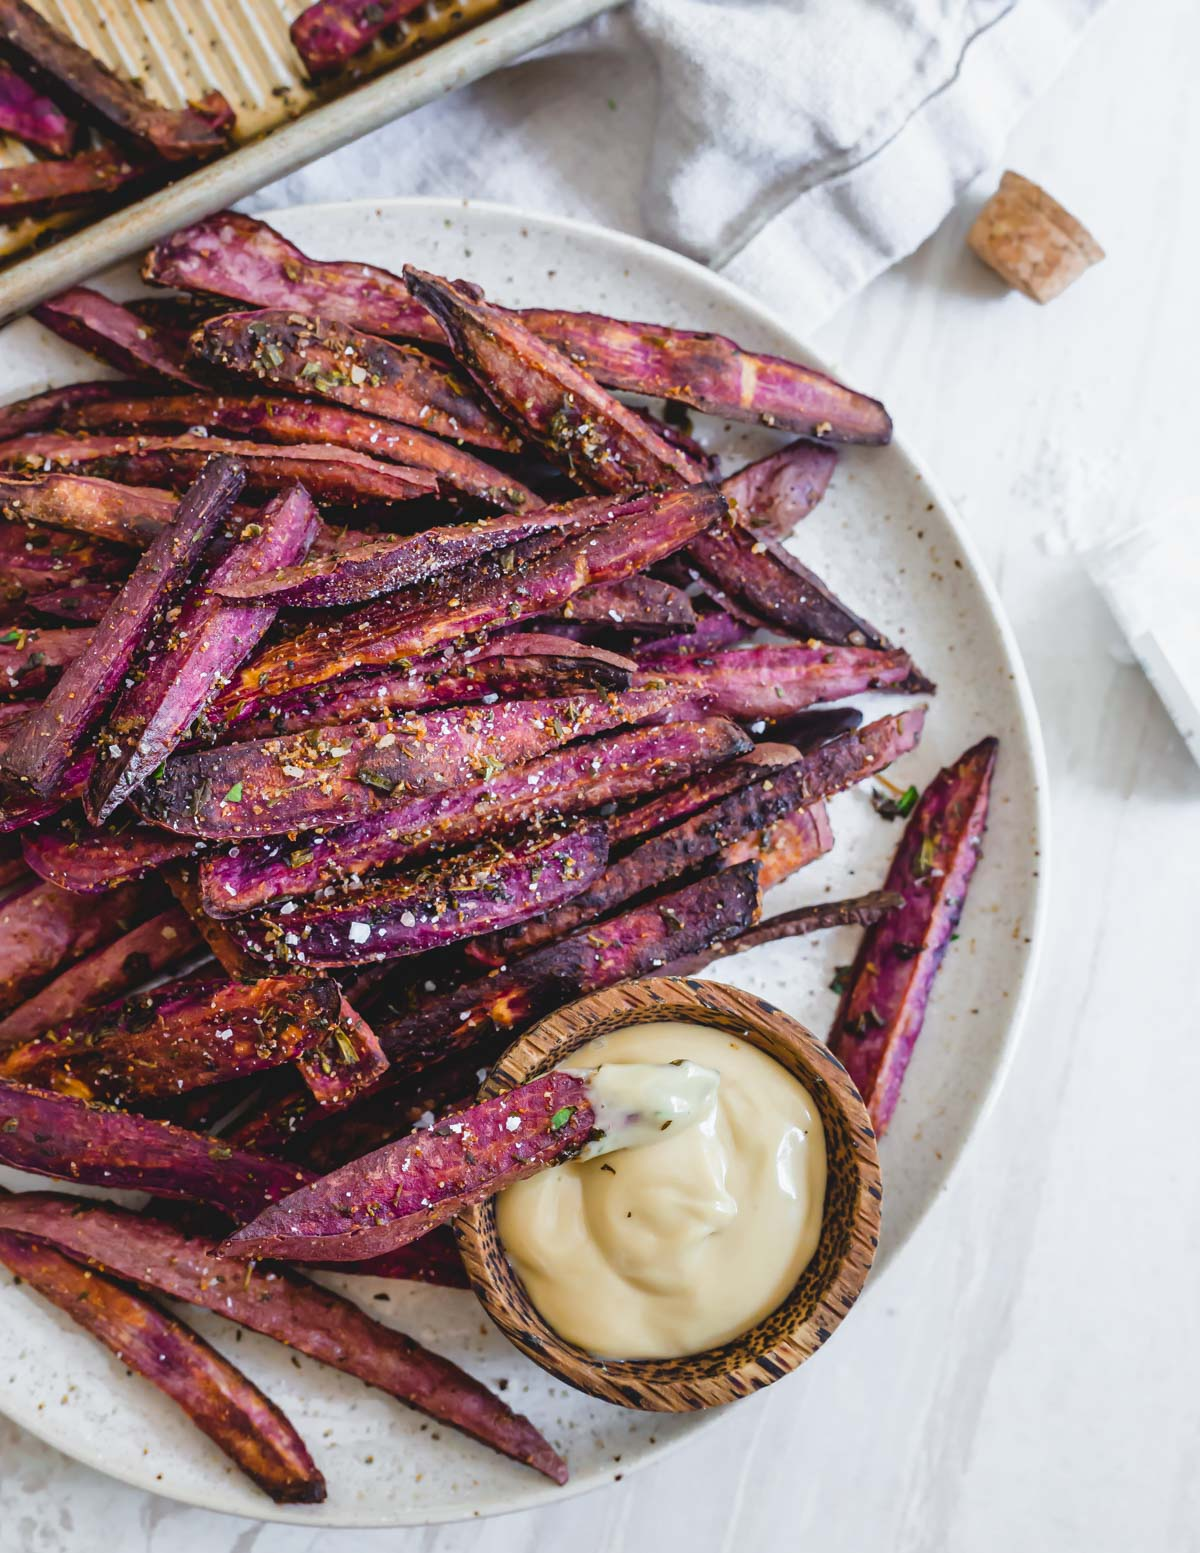 Healthy purple sweet potato fries with fresh herbs, oil and sea salt with mayo dipping sauce.